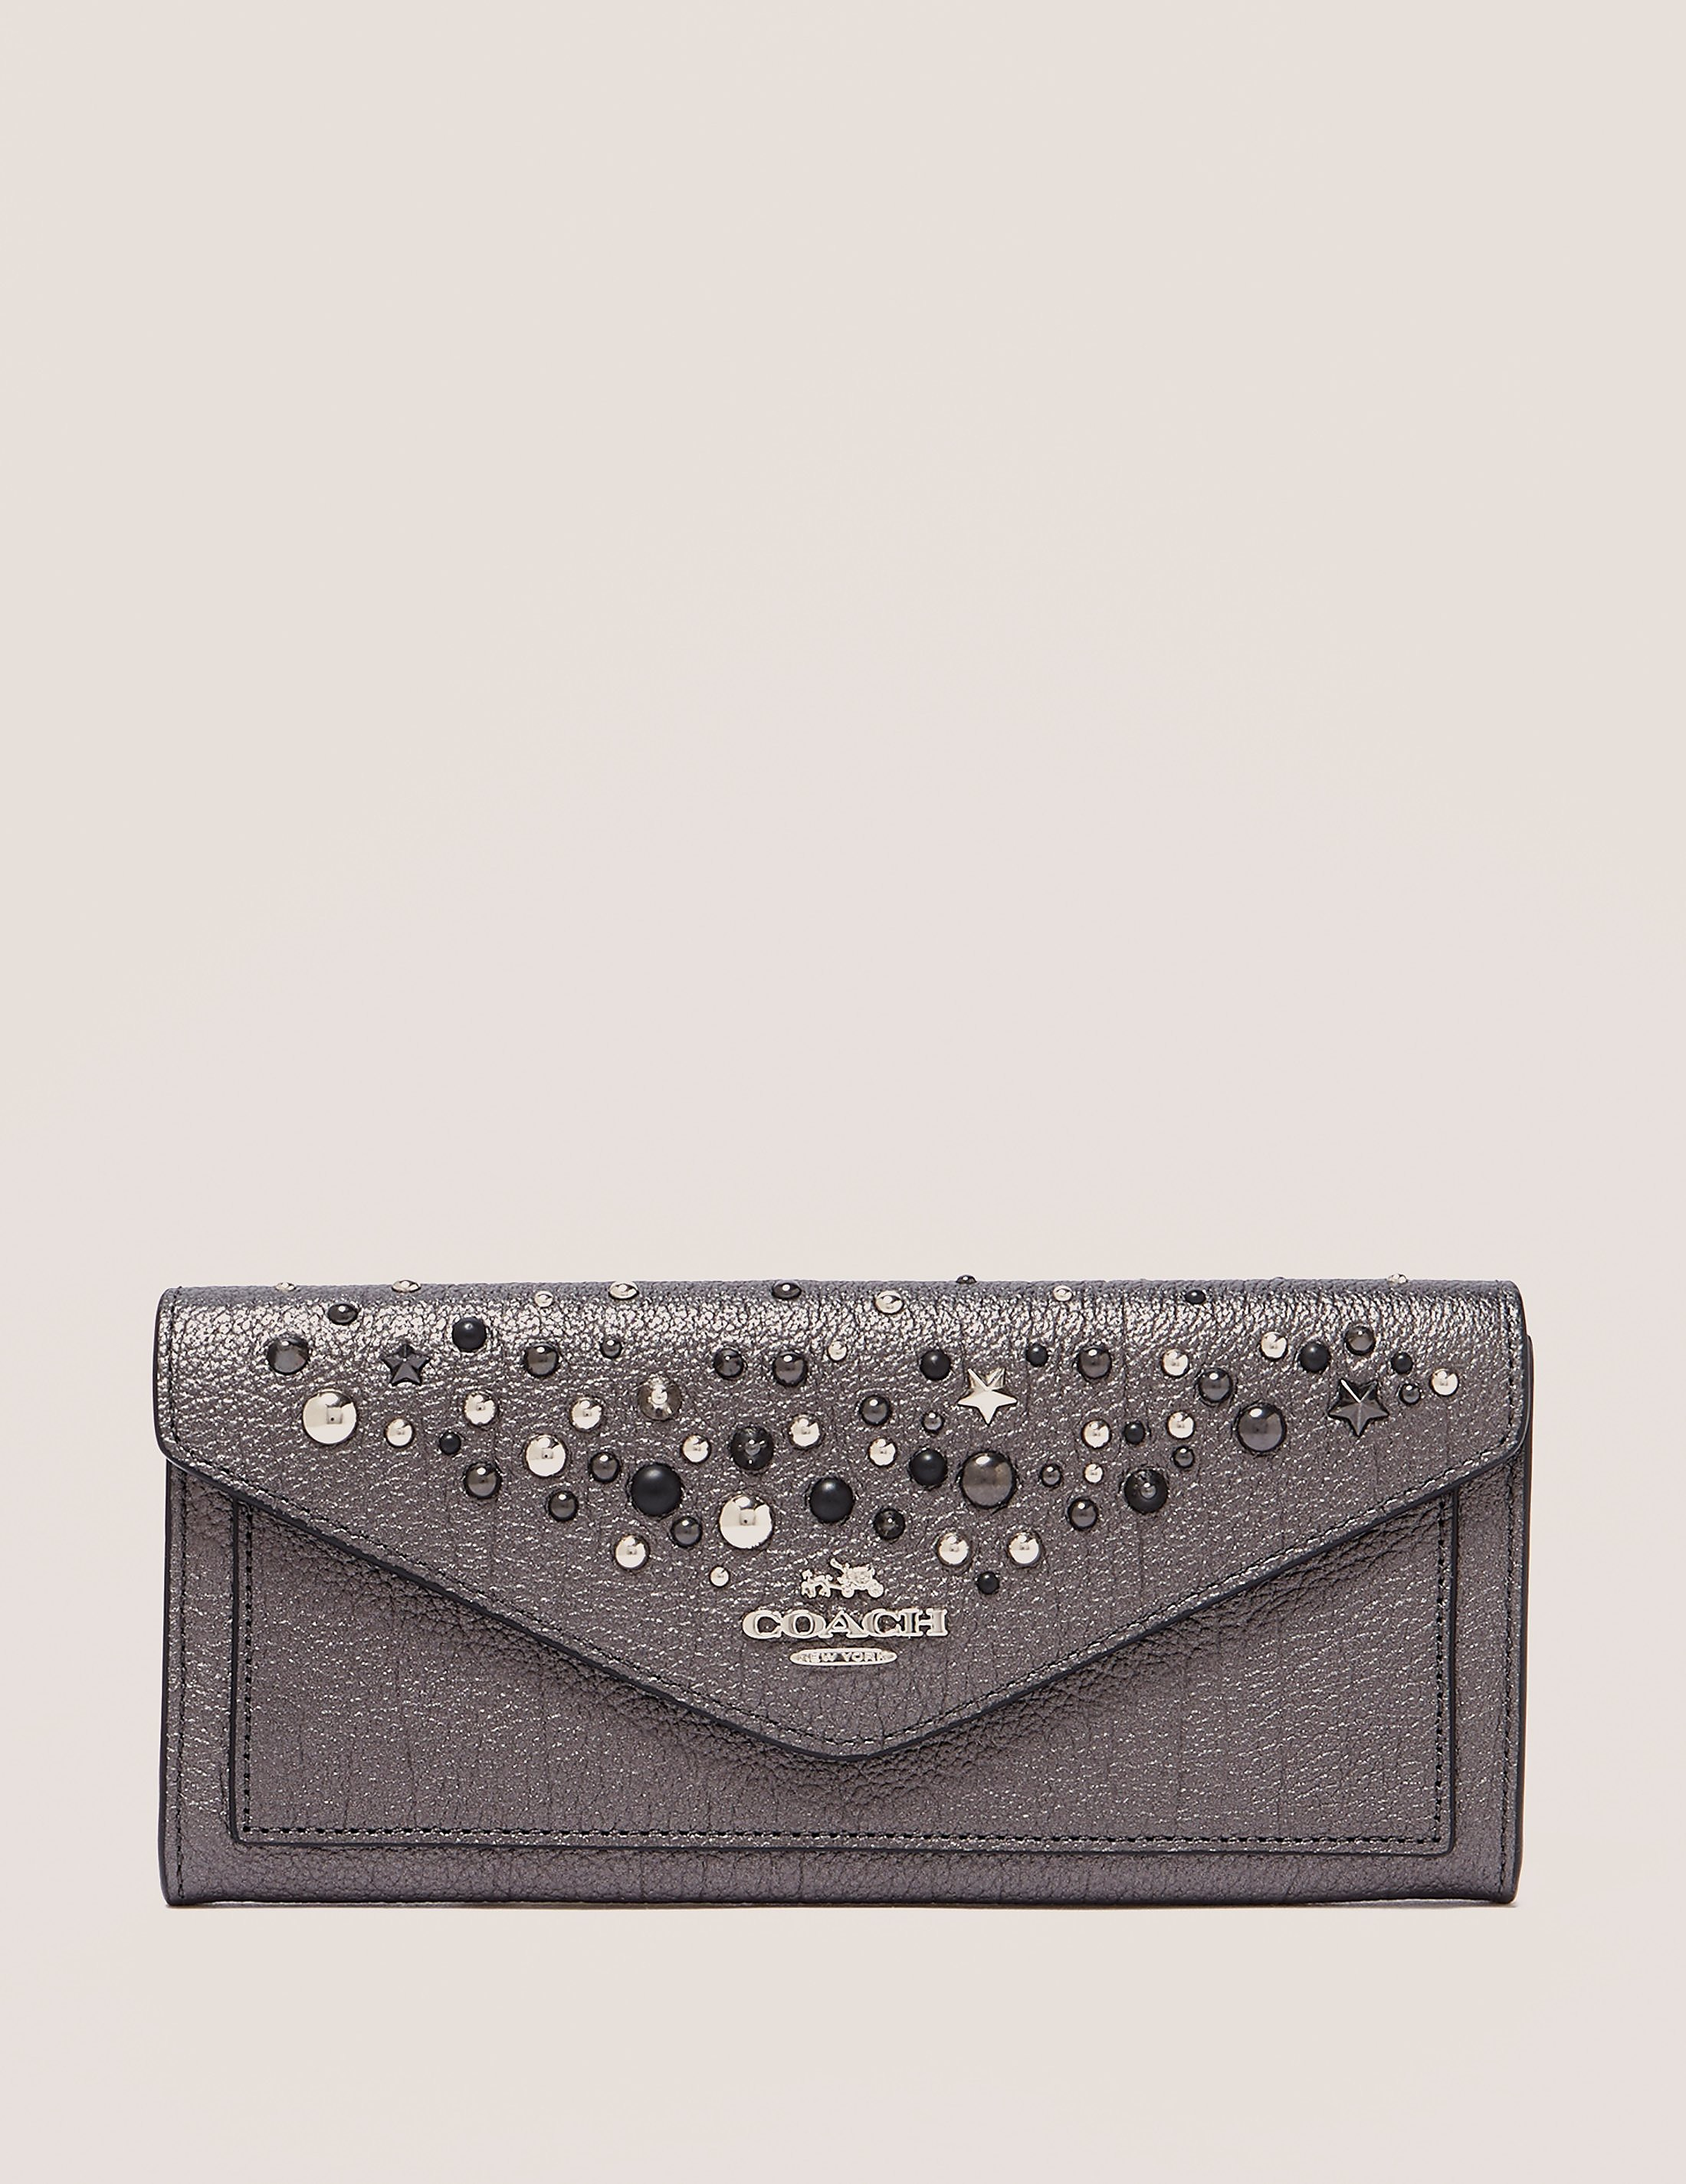 COACH Embellished Soft Wallet